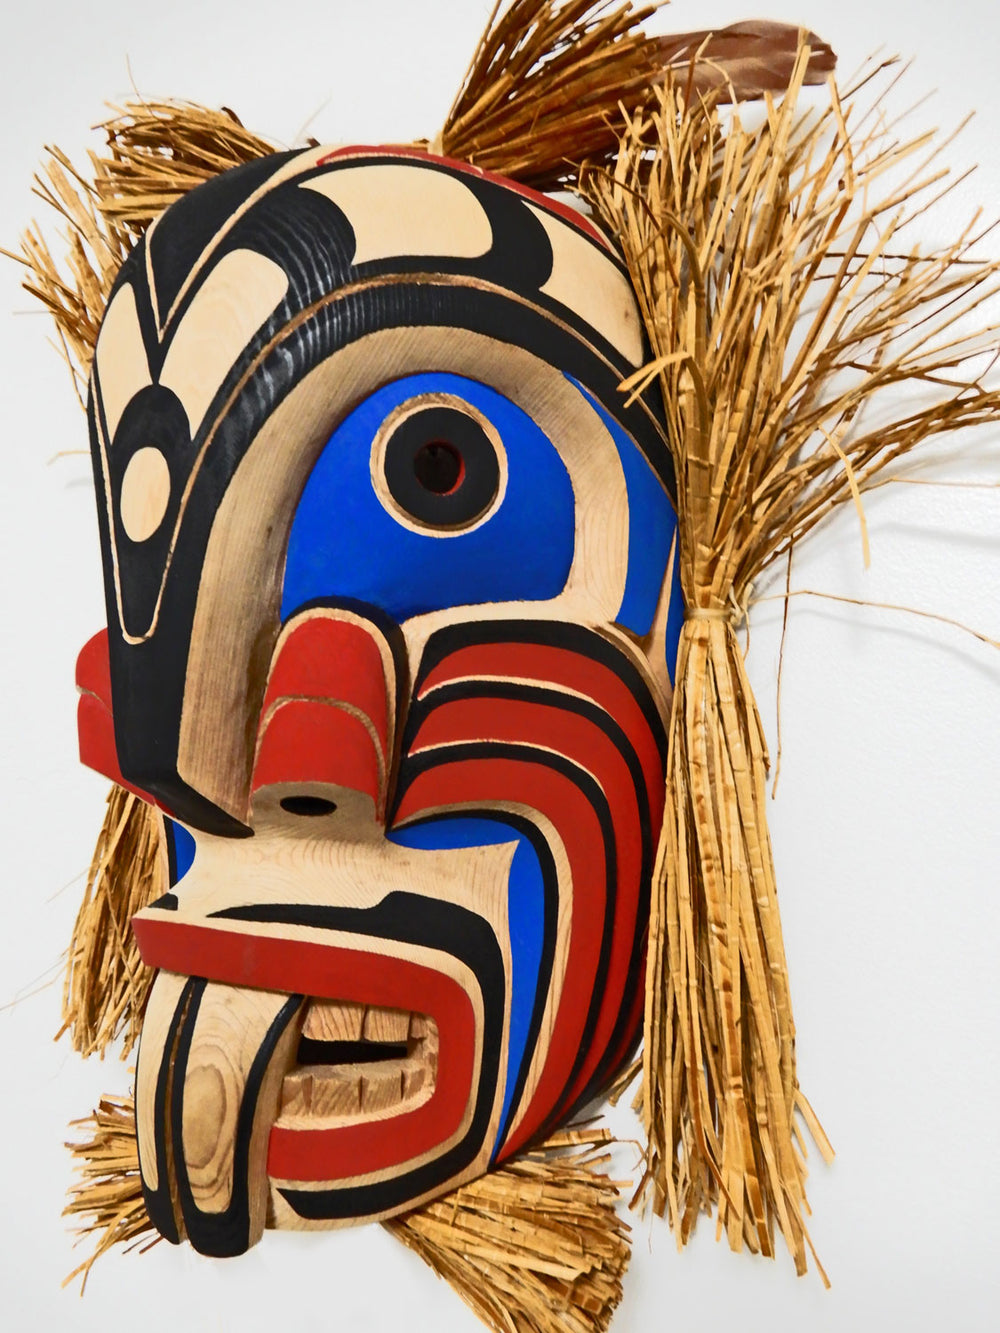 Pugwis or Merman Mask